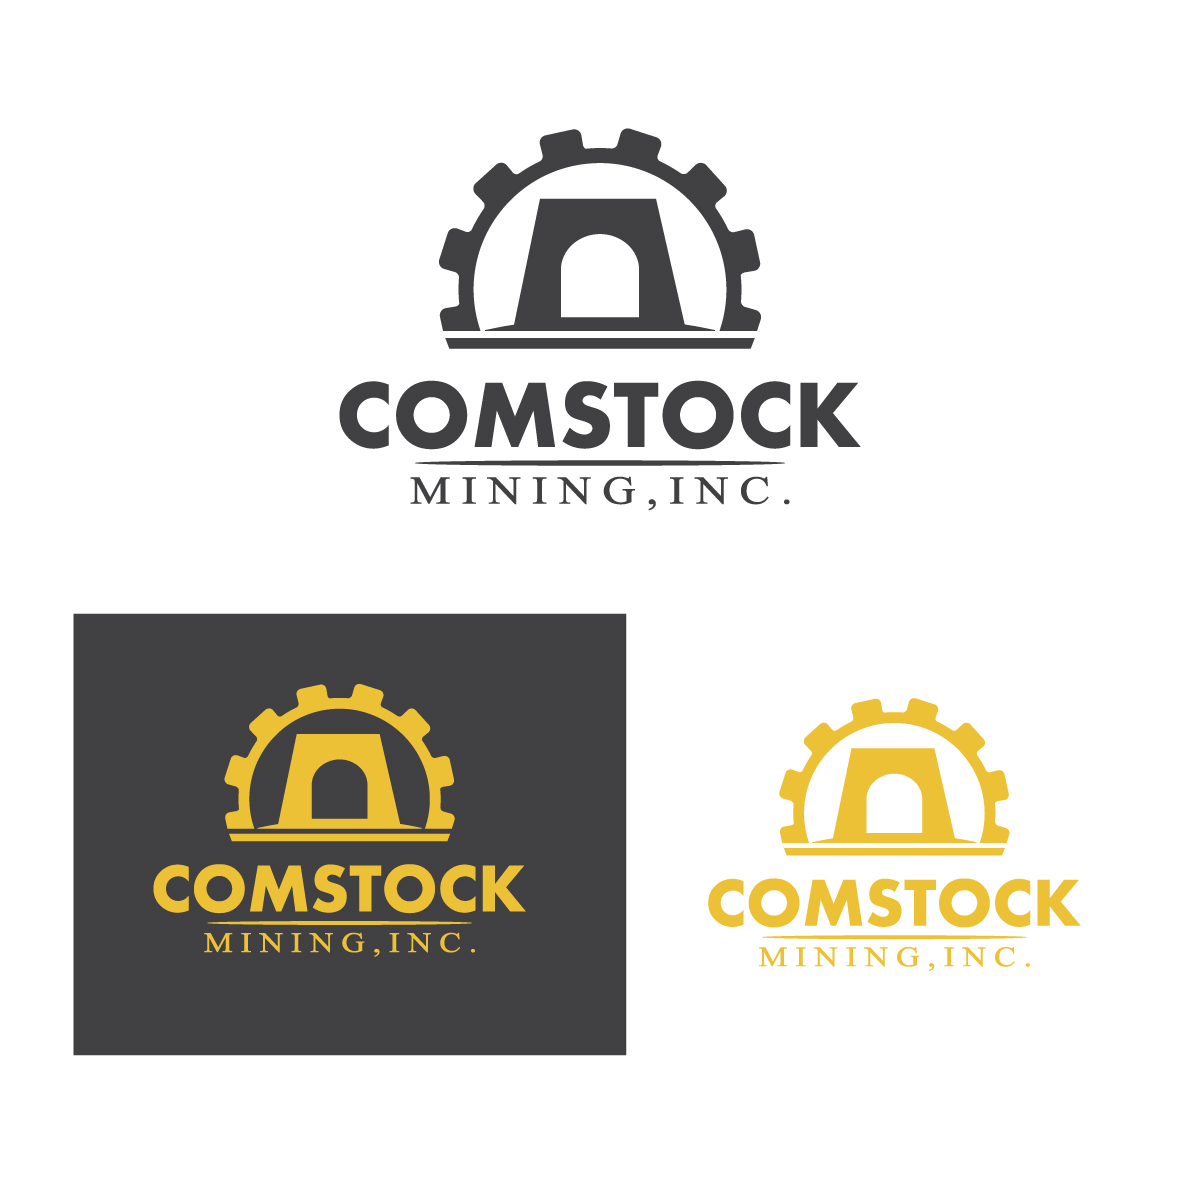 Logo Design by danelav - Entry No. 143 in the Logo Design Contest Captivating Logo Design for Comstock Mining, Inc..